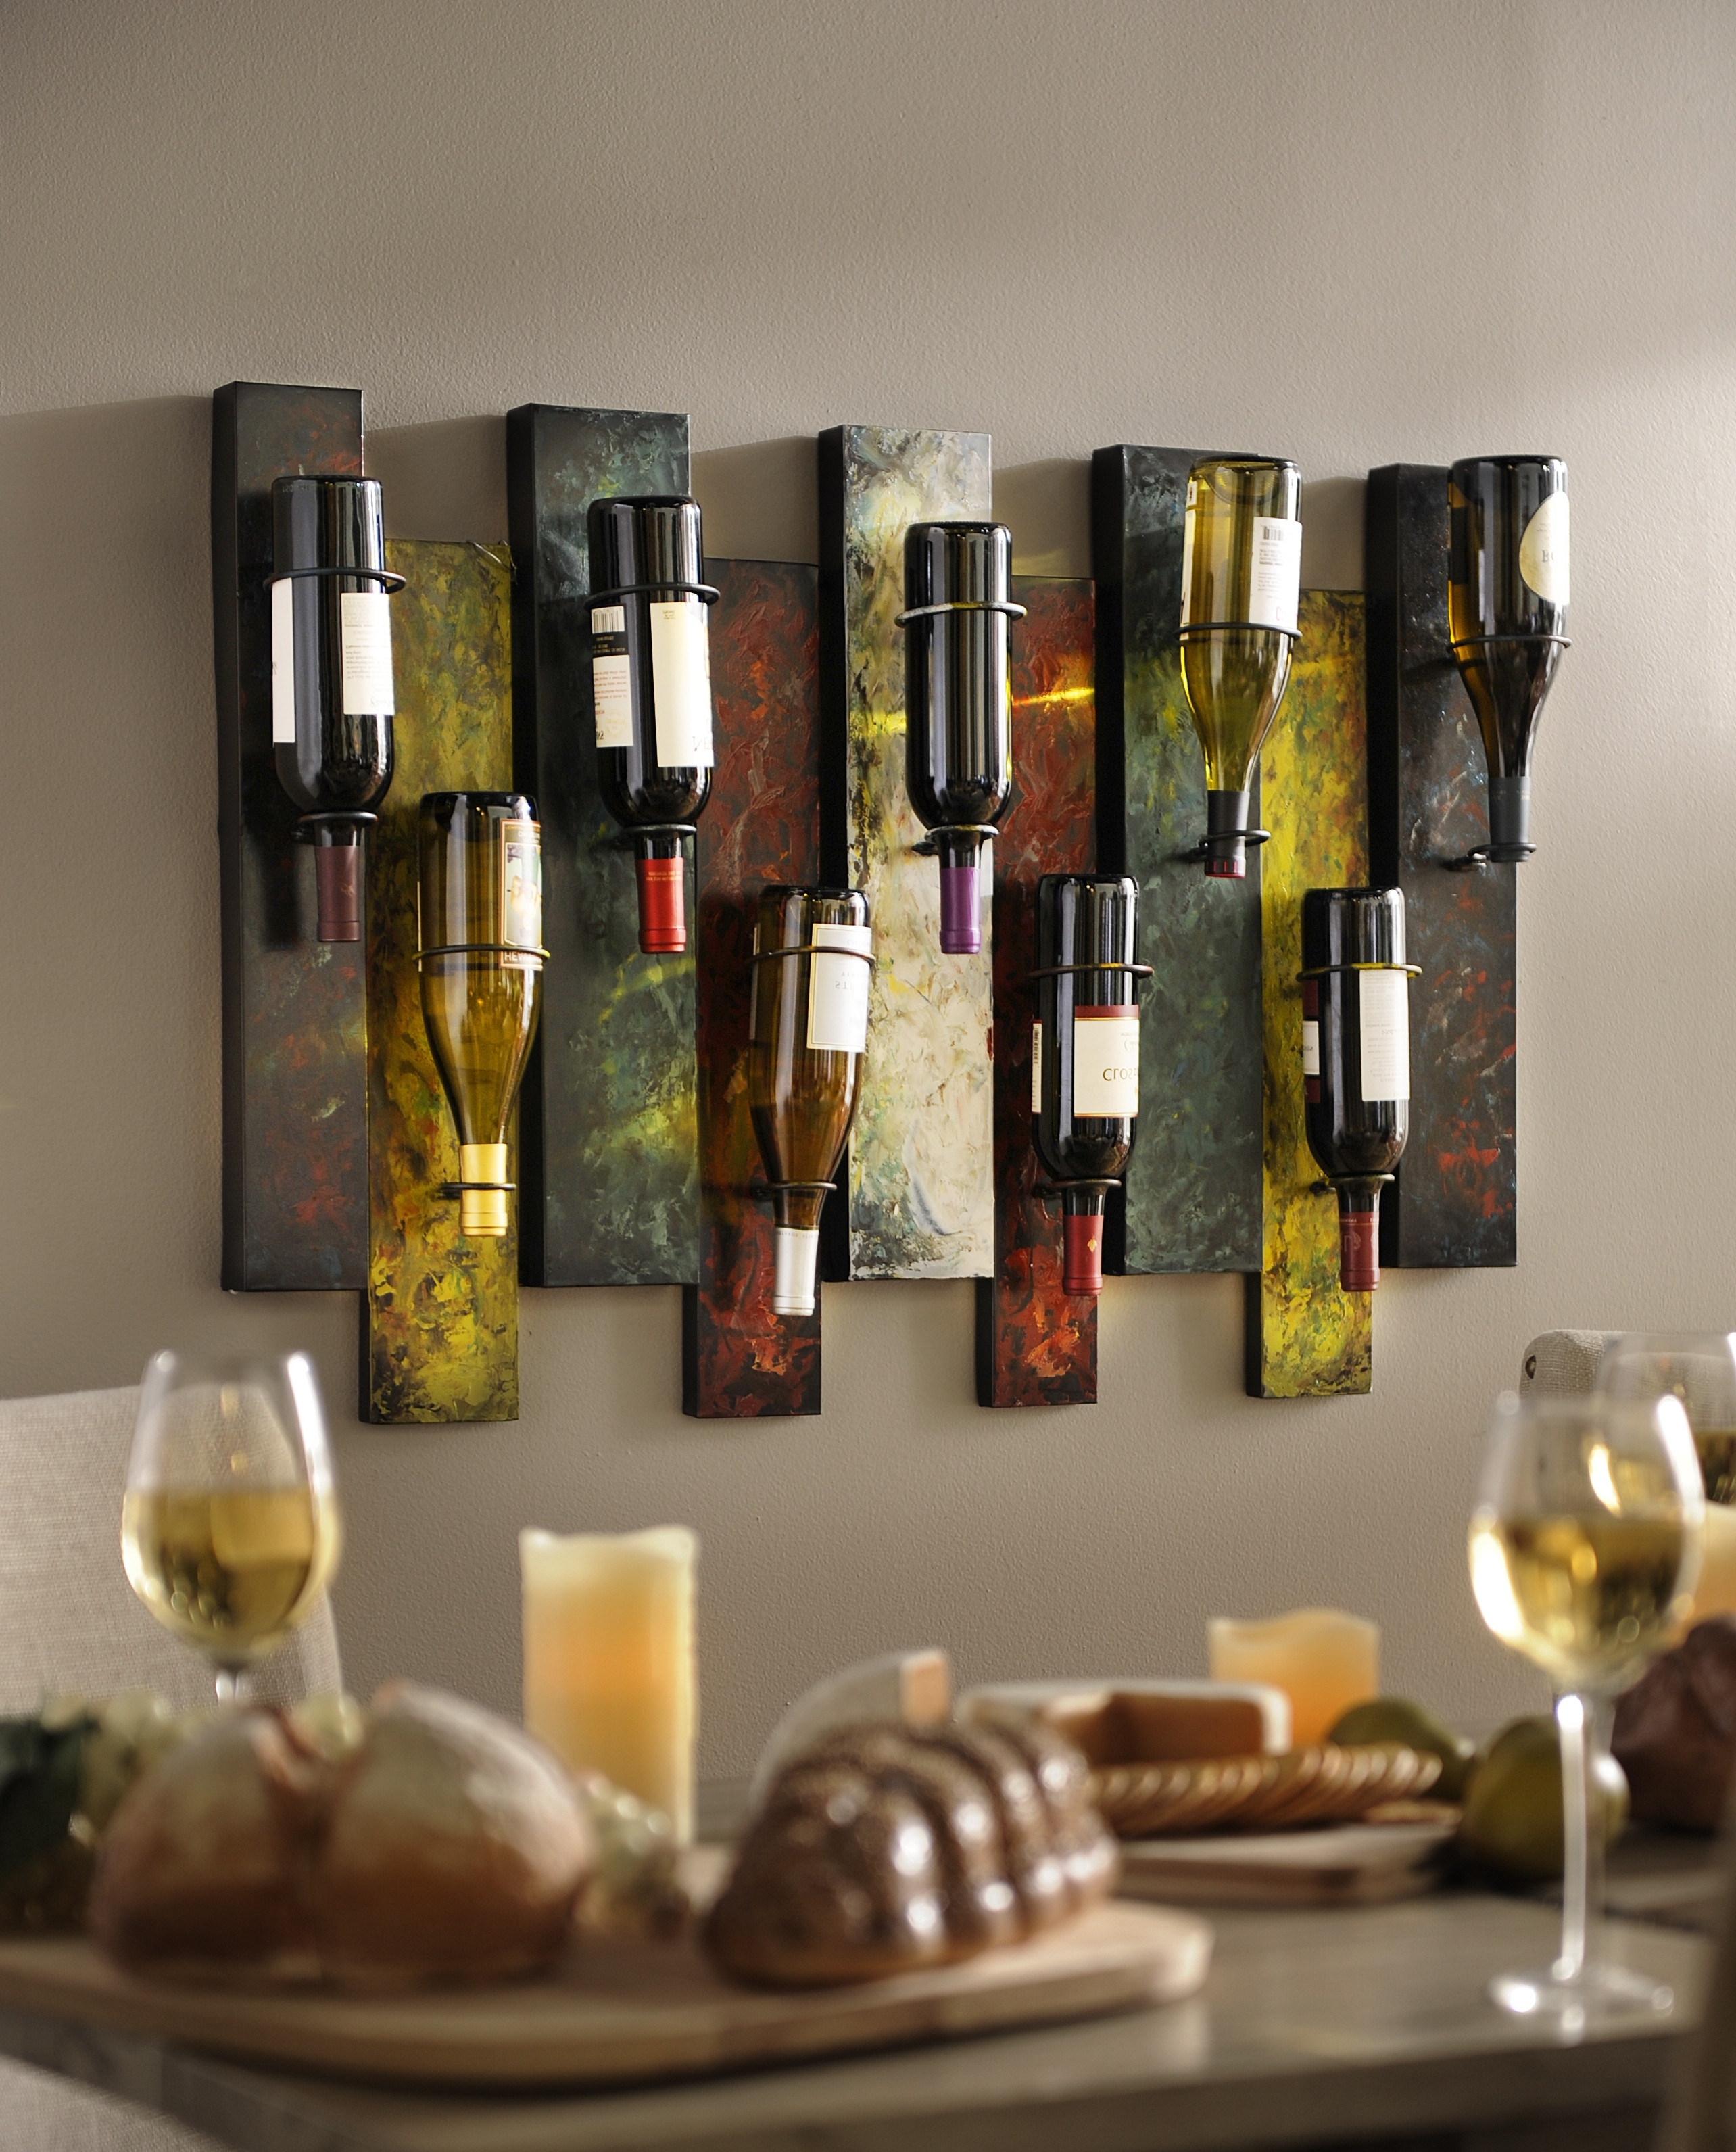 Kirklands Wall Art With Regard To Well Known Dorable Kirklands Wall Deco Wine Bottle Wall Decor Amazing Large (View 14 of 15)